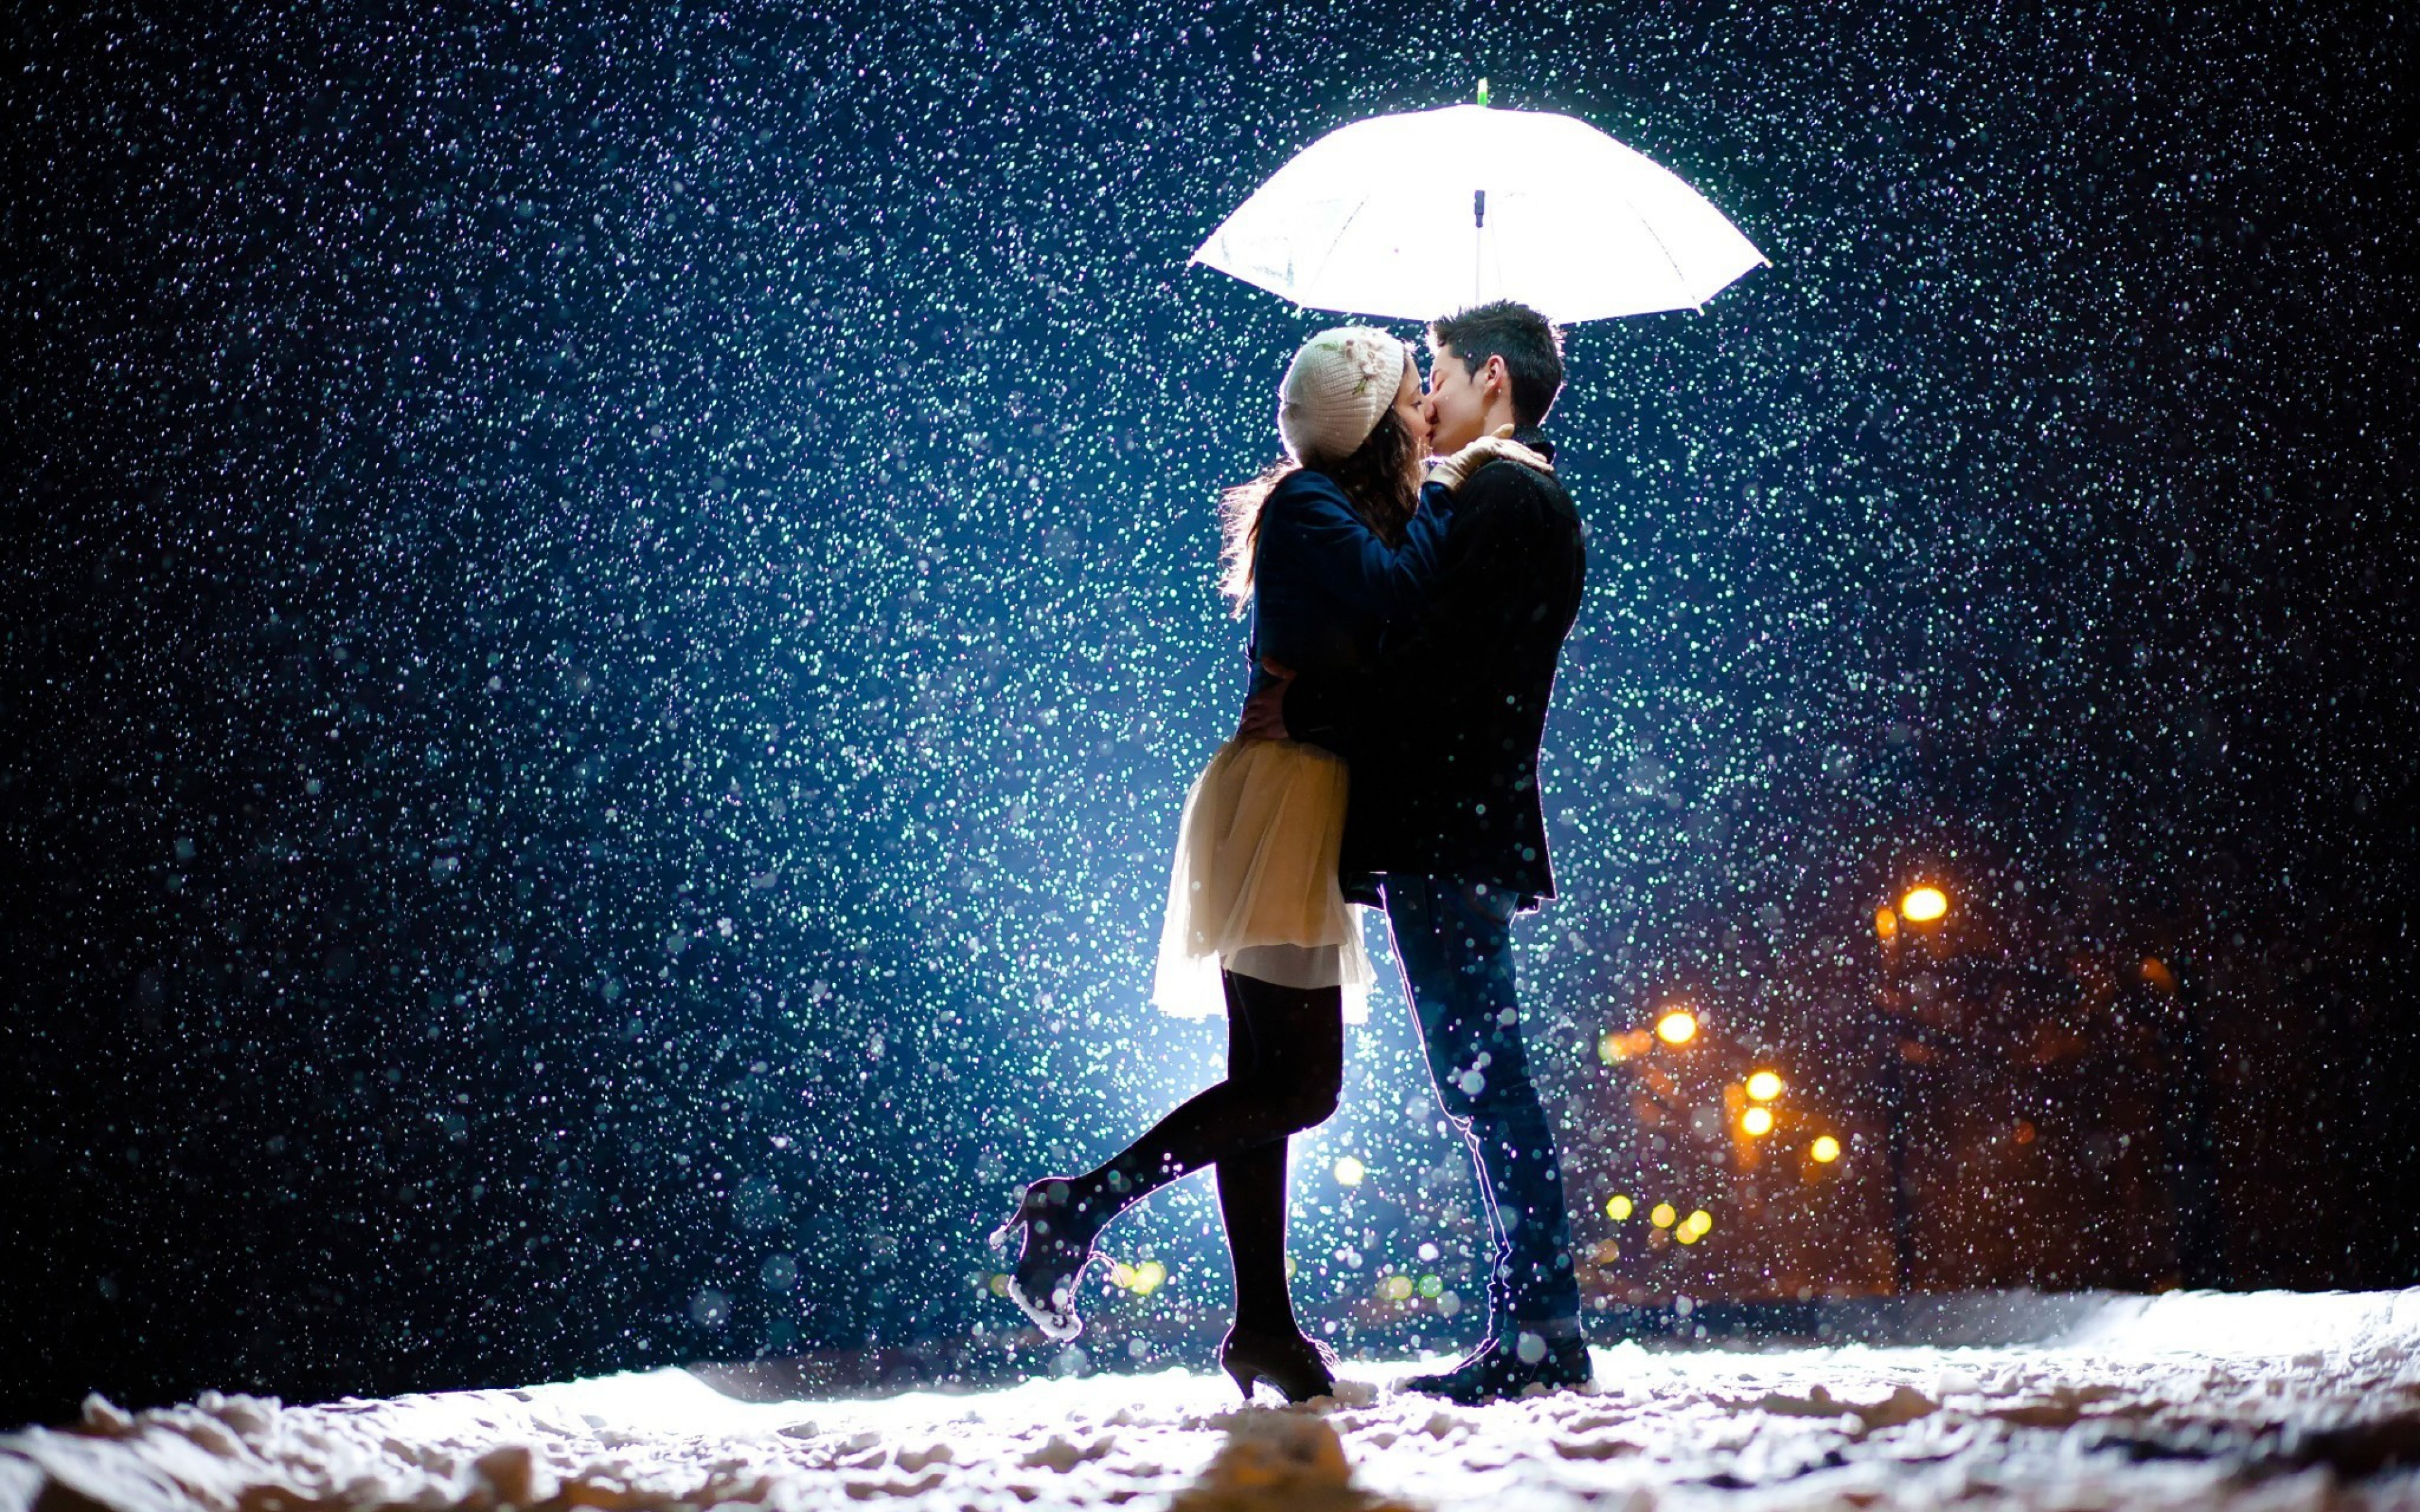 Couple kiss in snow hd love 4k wallpapers images - 4k love wallpaper for mobile ...